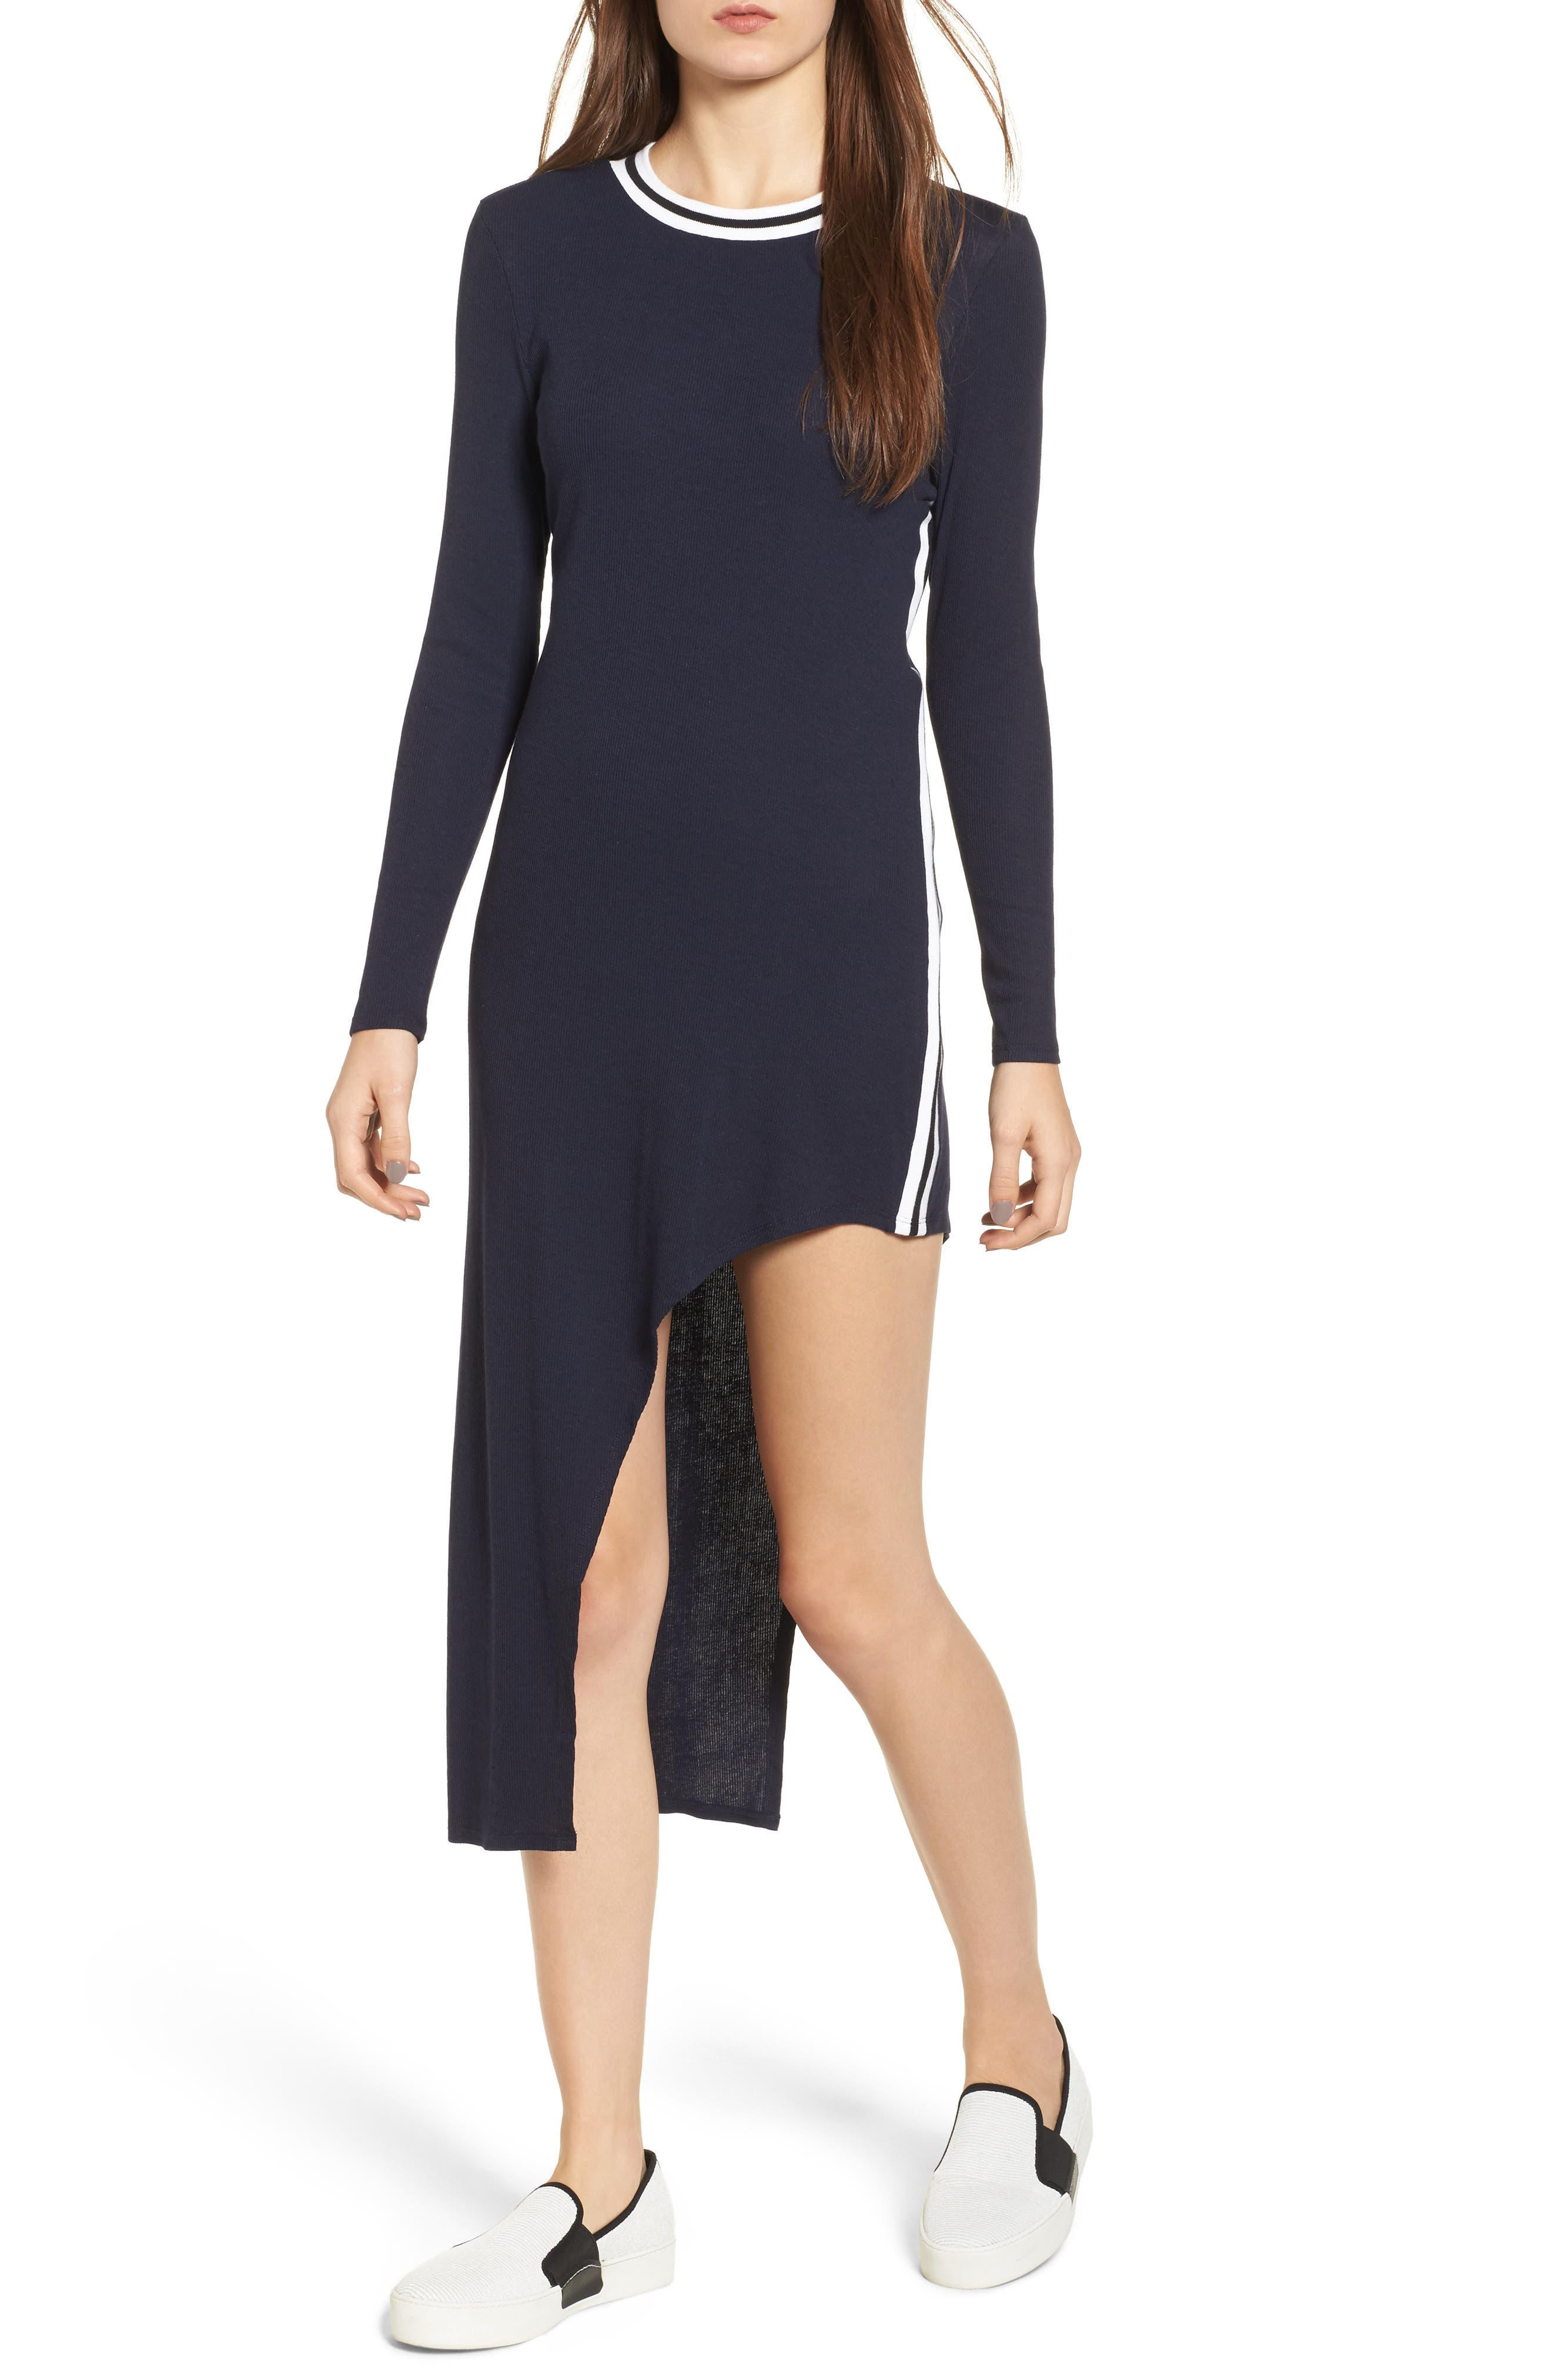 The Fifth Label Solo Asymmetrical Dress